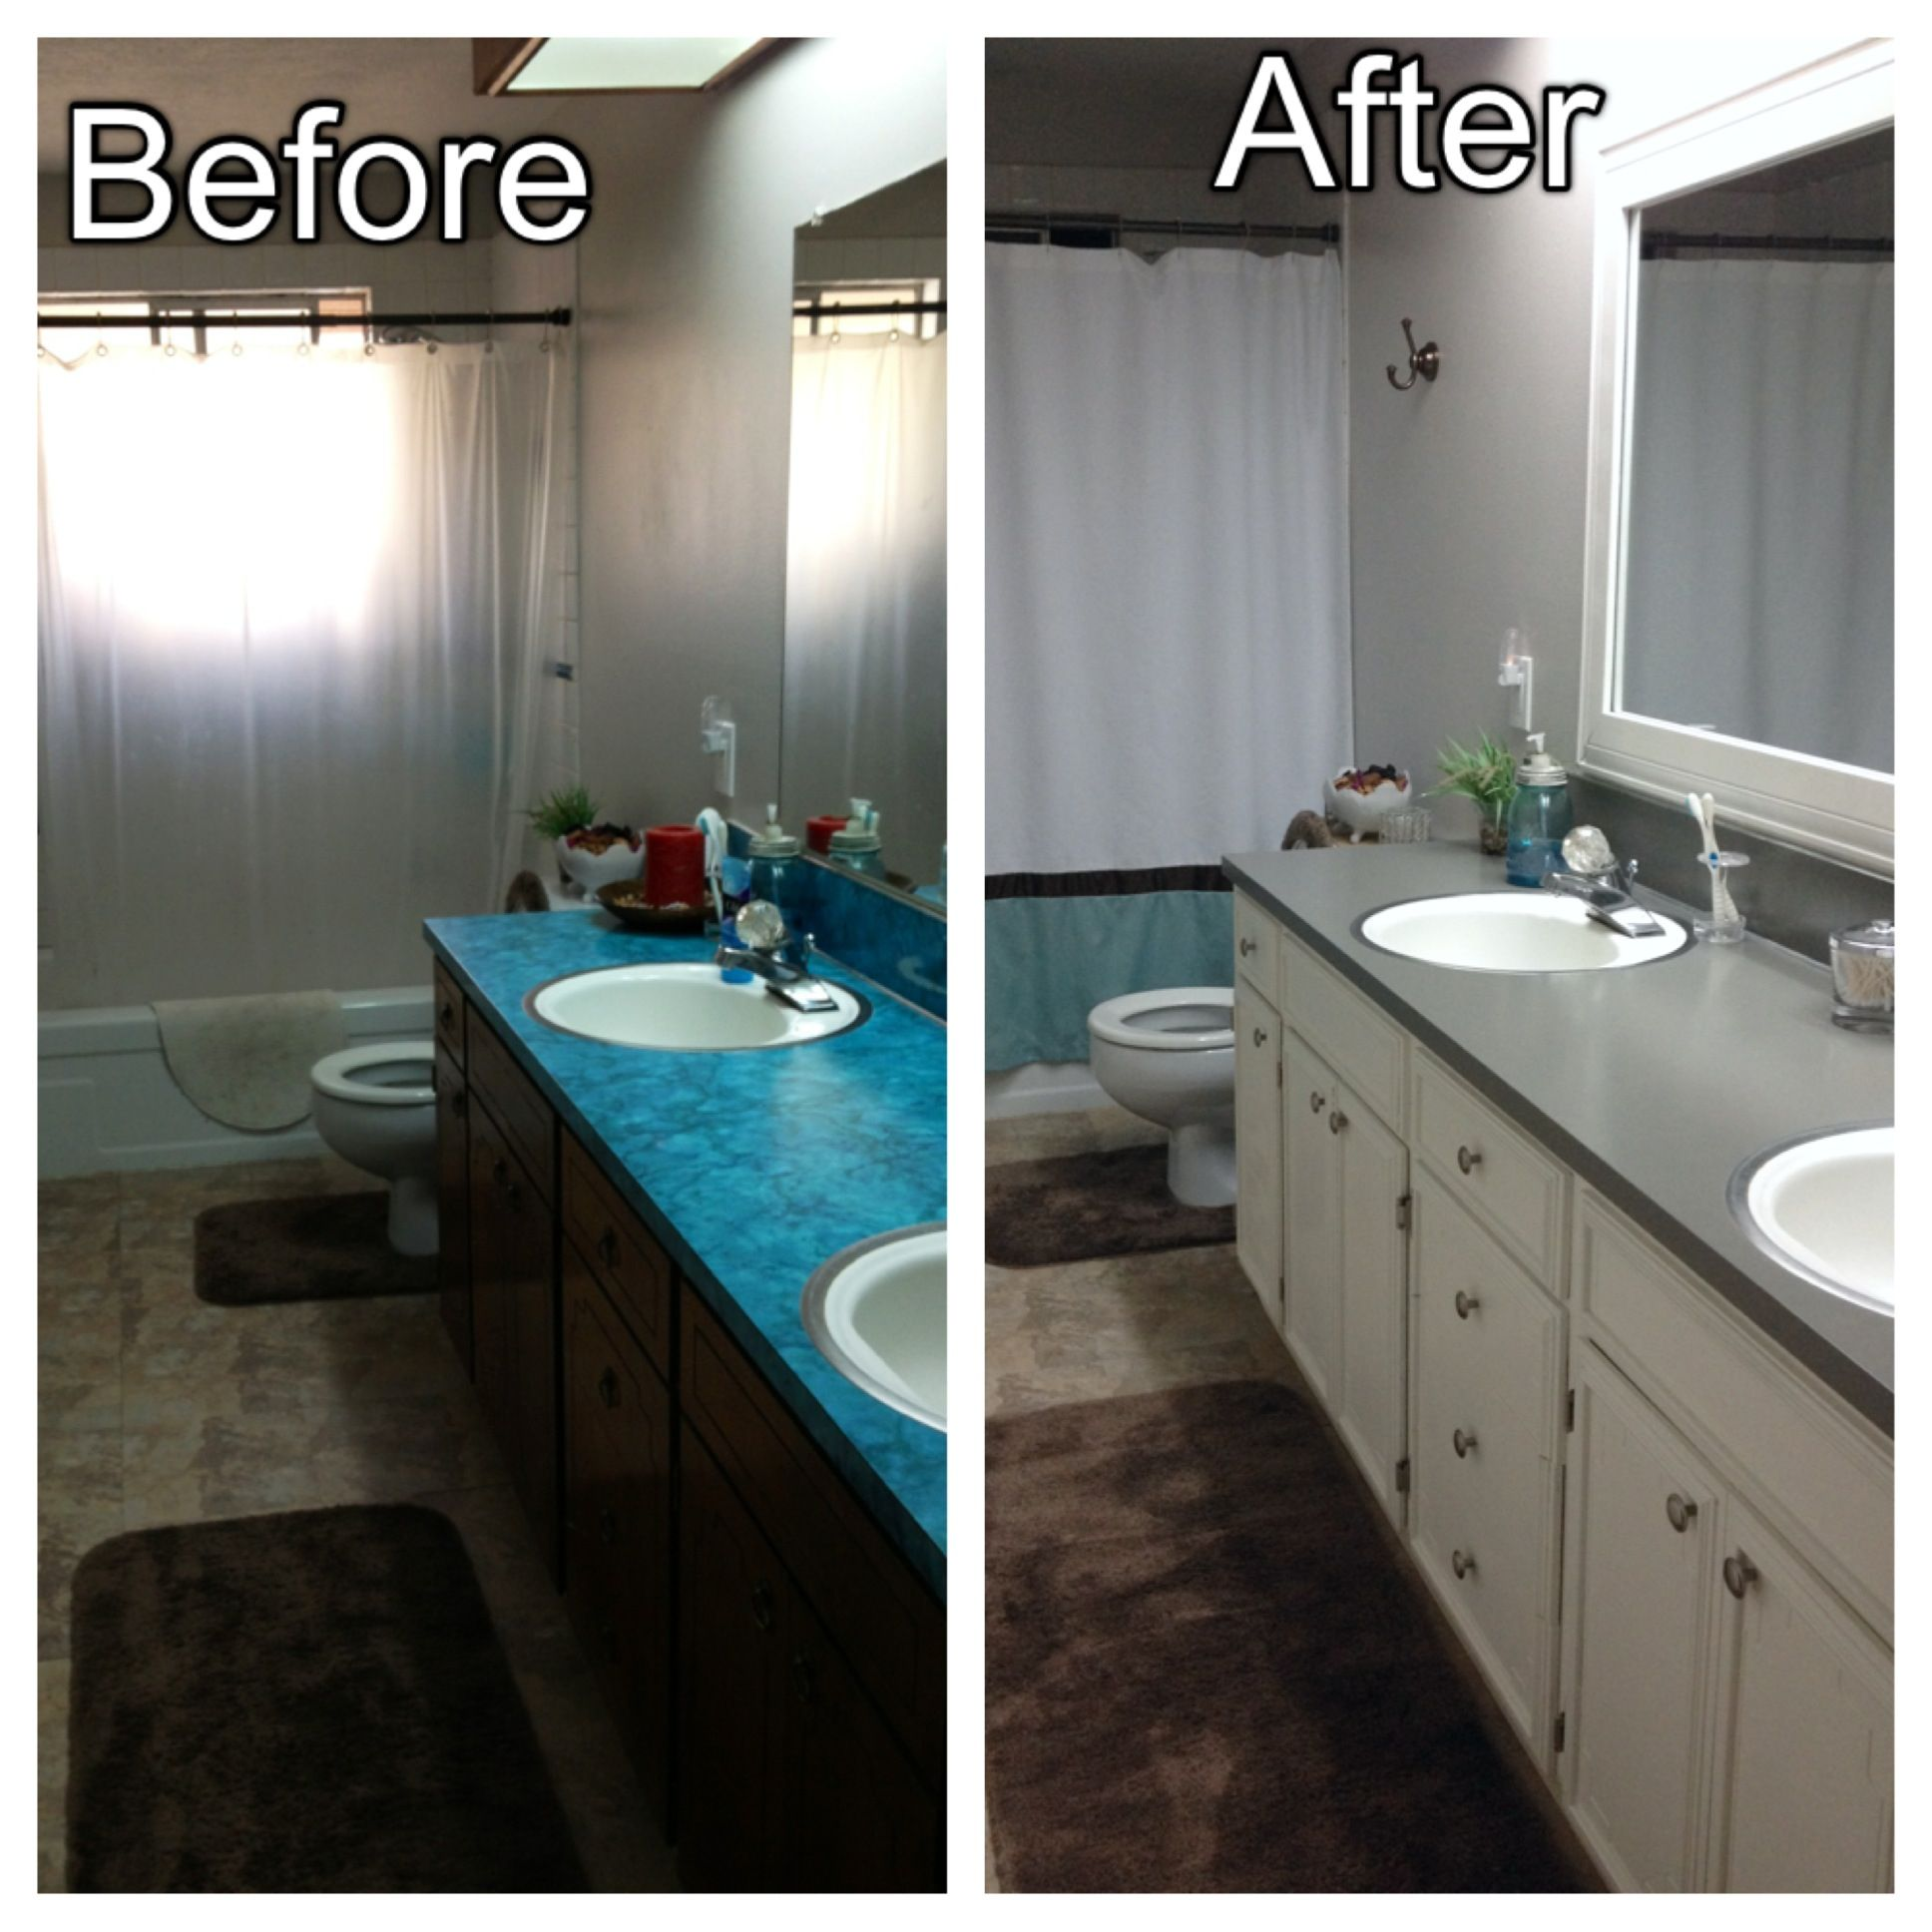 Pin By Reanna Bohannon On For The Home Painting Bathroom Countertops Bathrooms Remodel Cheap Remodel